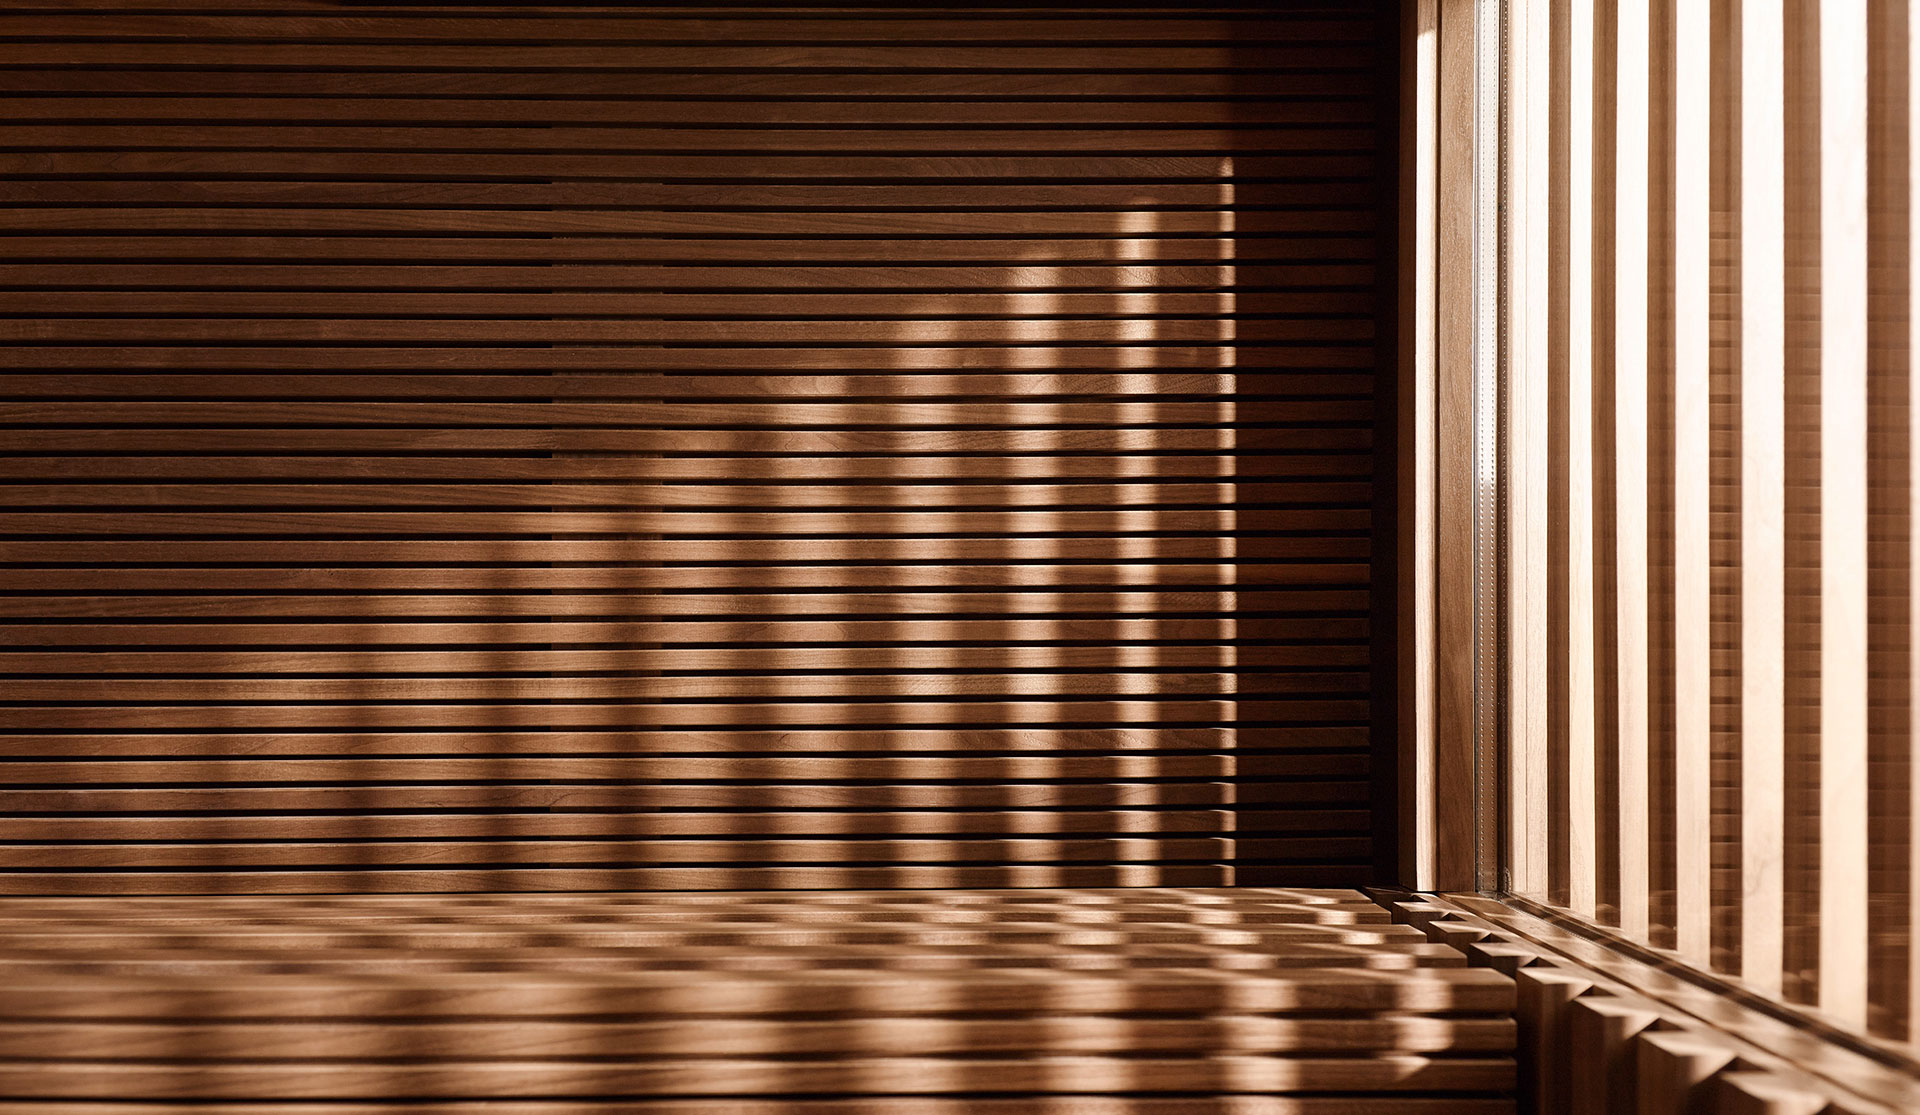 Klafs sauna designed by Matteo Thun and Antonio Rodriguez